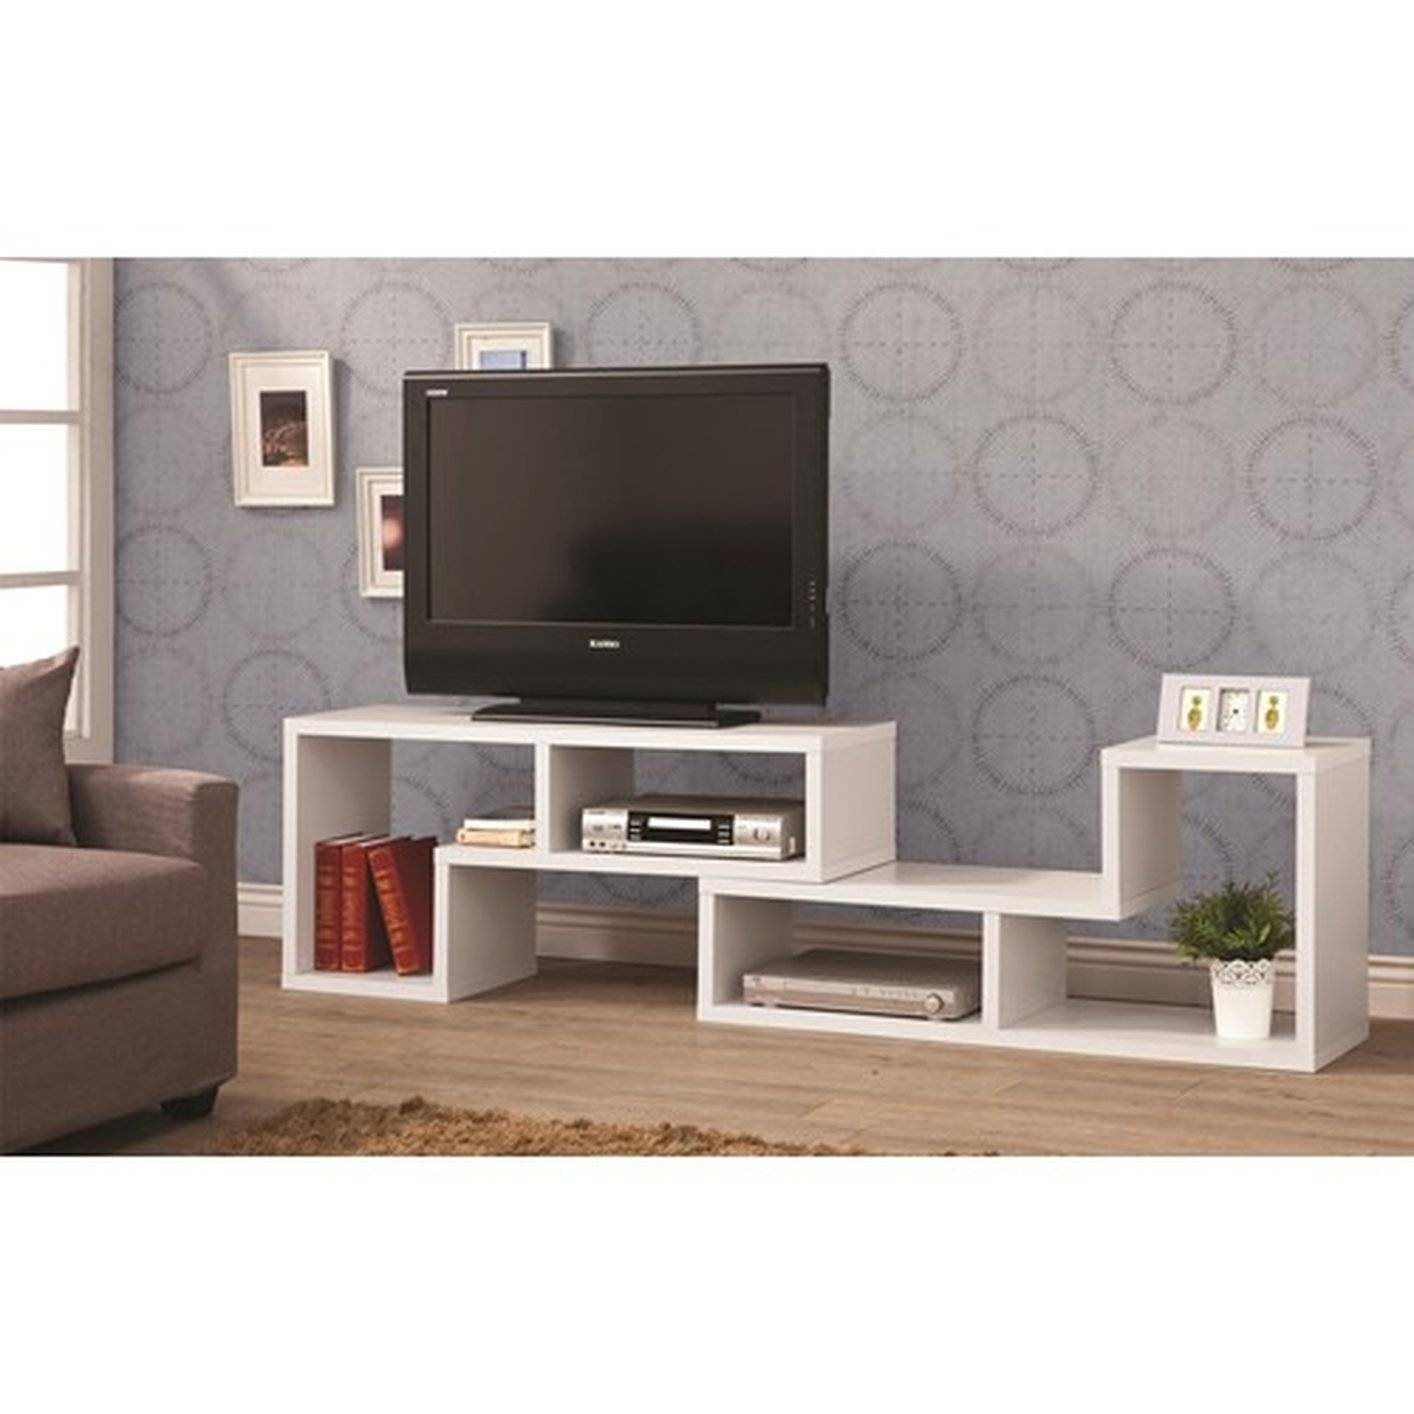 White Wood Tv Stand - Steal-A-Sofa Furniture Outlet Los Angeles Ca for Modern Wooden Tv Stands (Image 15 of 15)